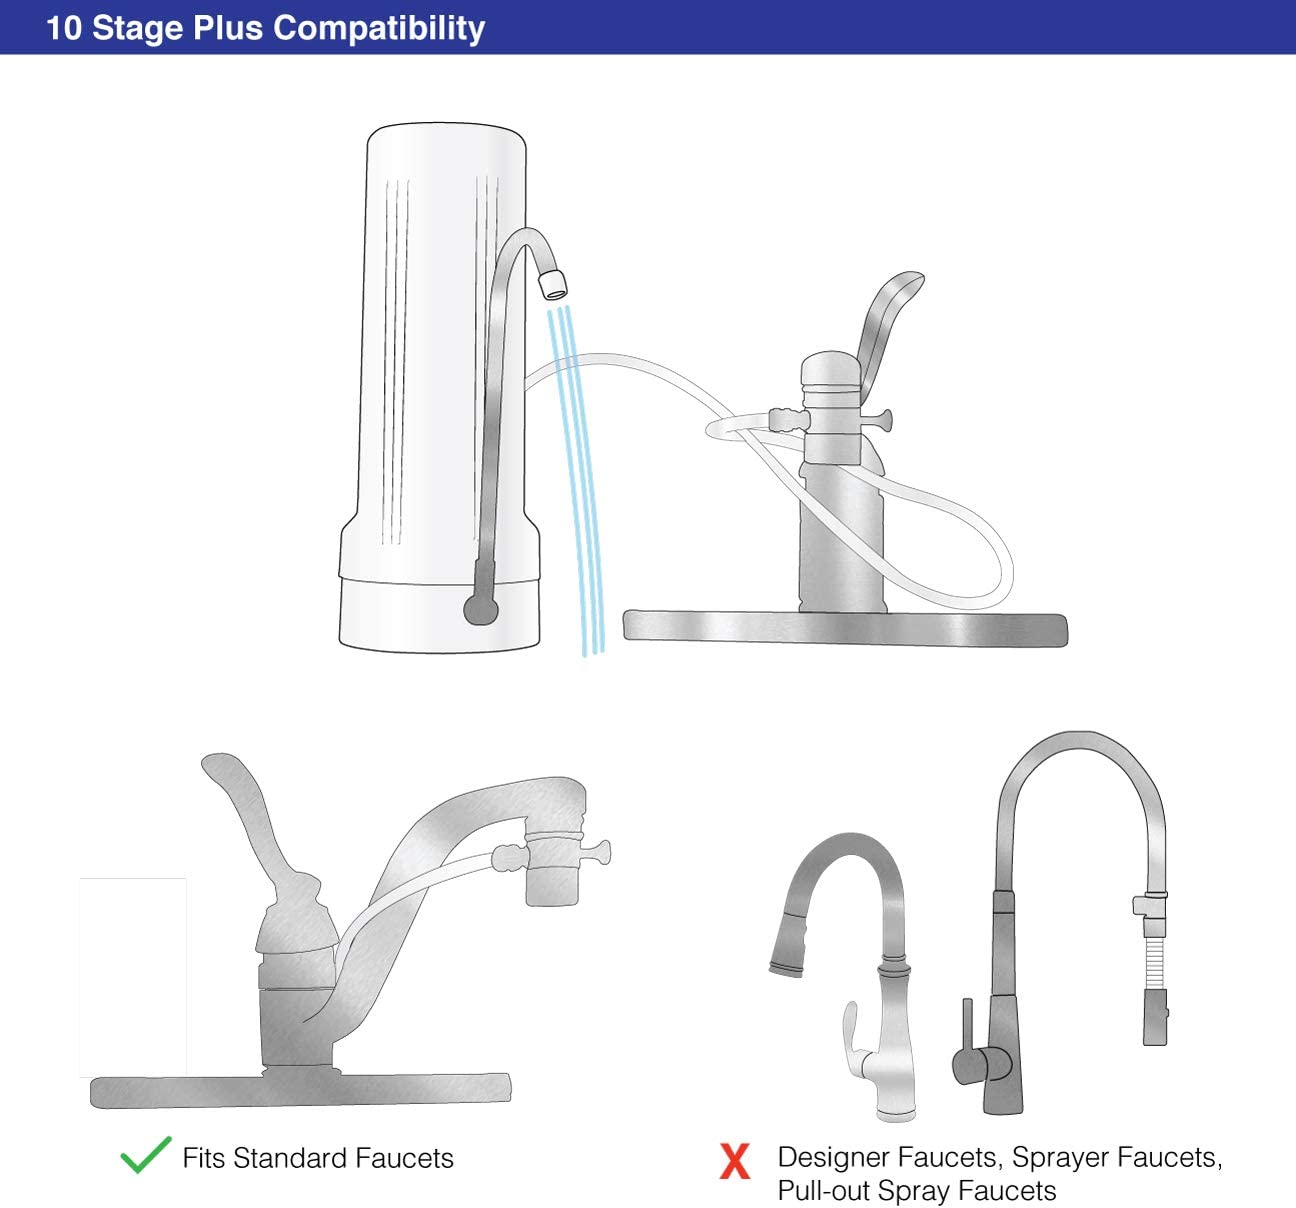 New Wave Enviro 10 Stage Countertop Water Filter Faucet fittings